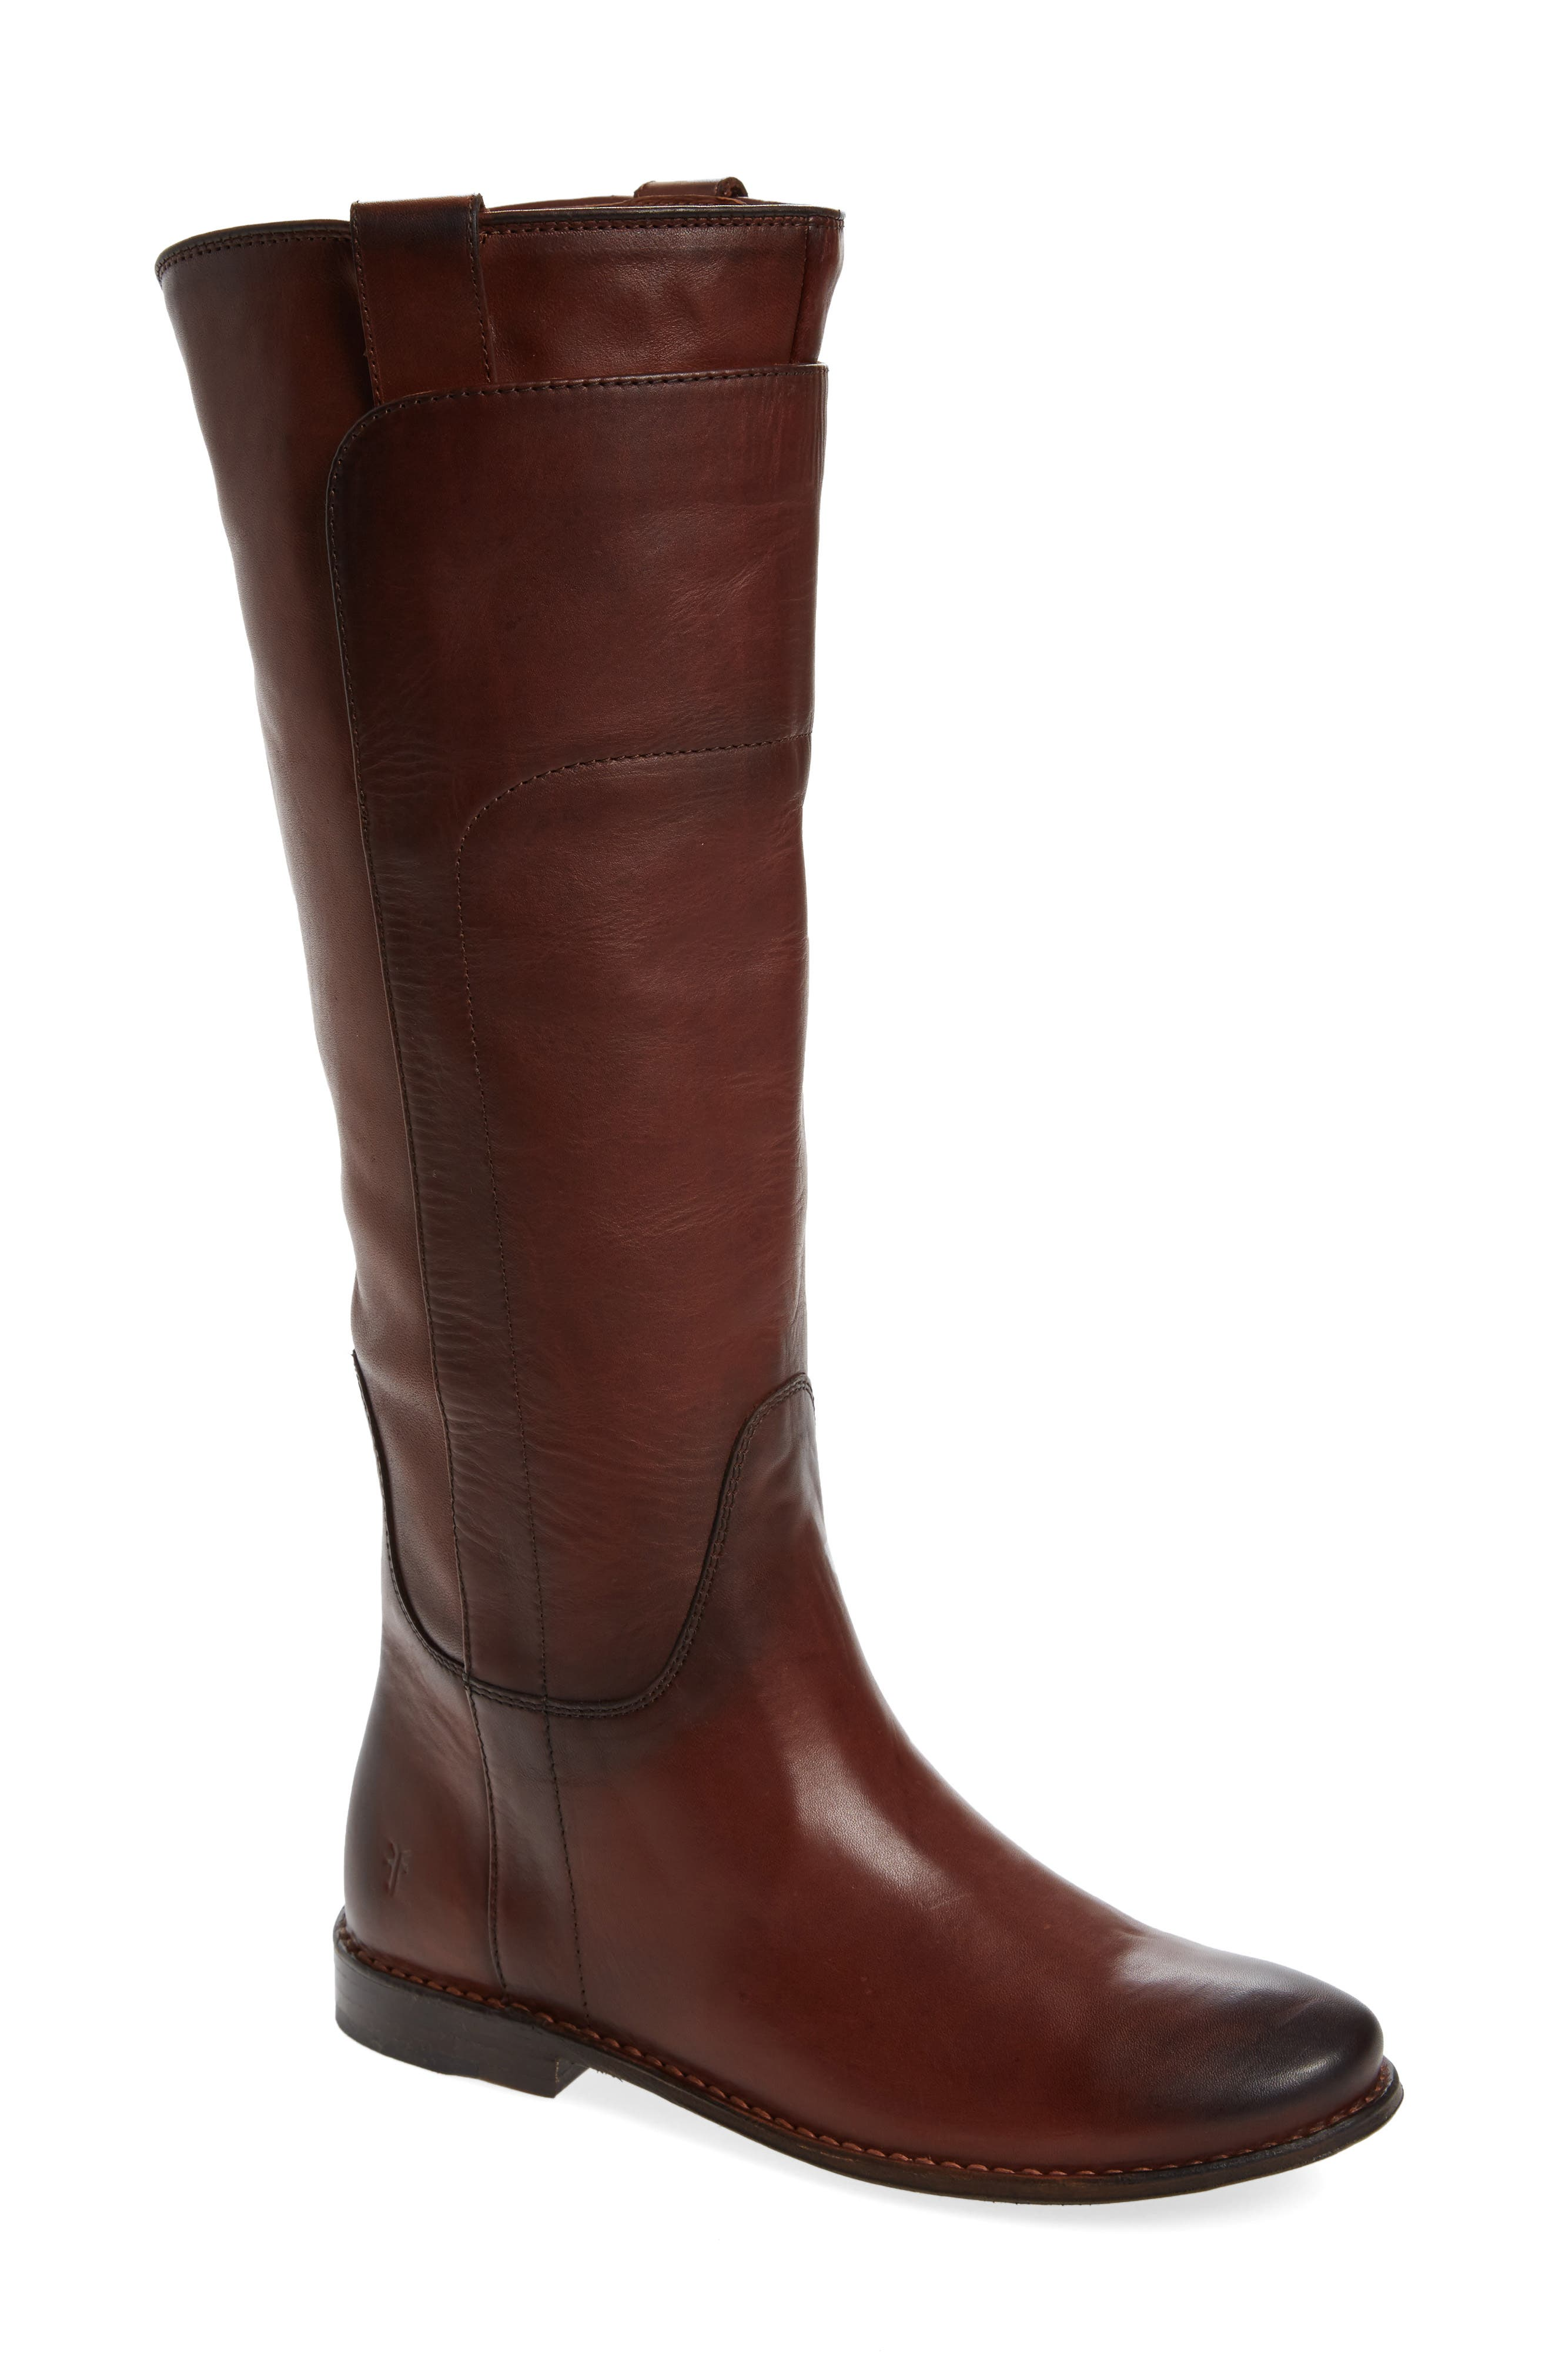 Alternate Image 1 Selected - Frye Paige Tall Riding Boot (Women)